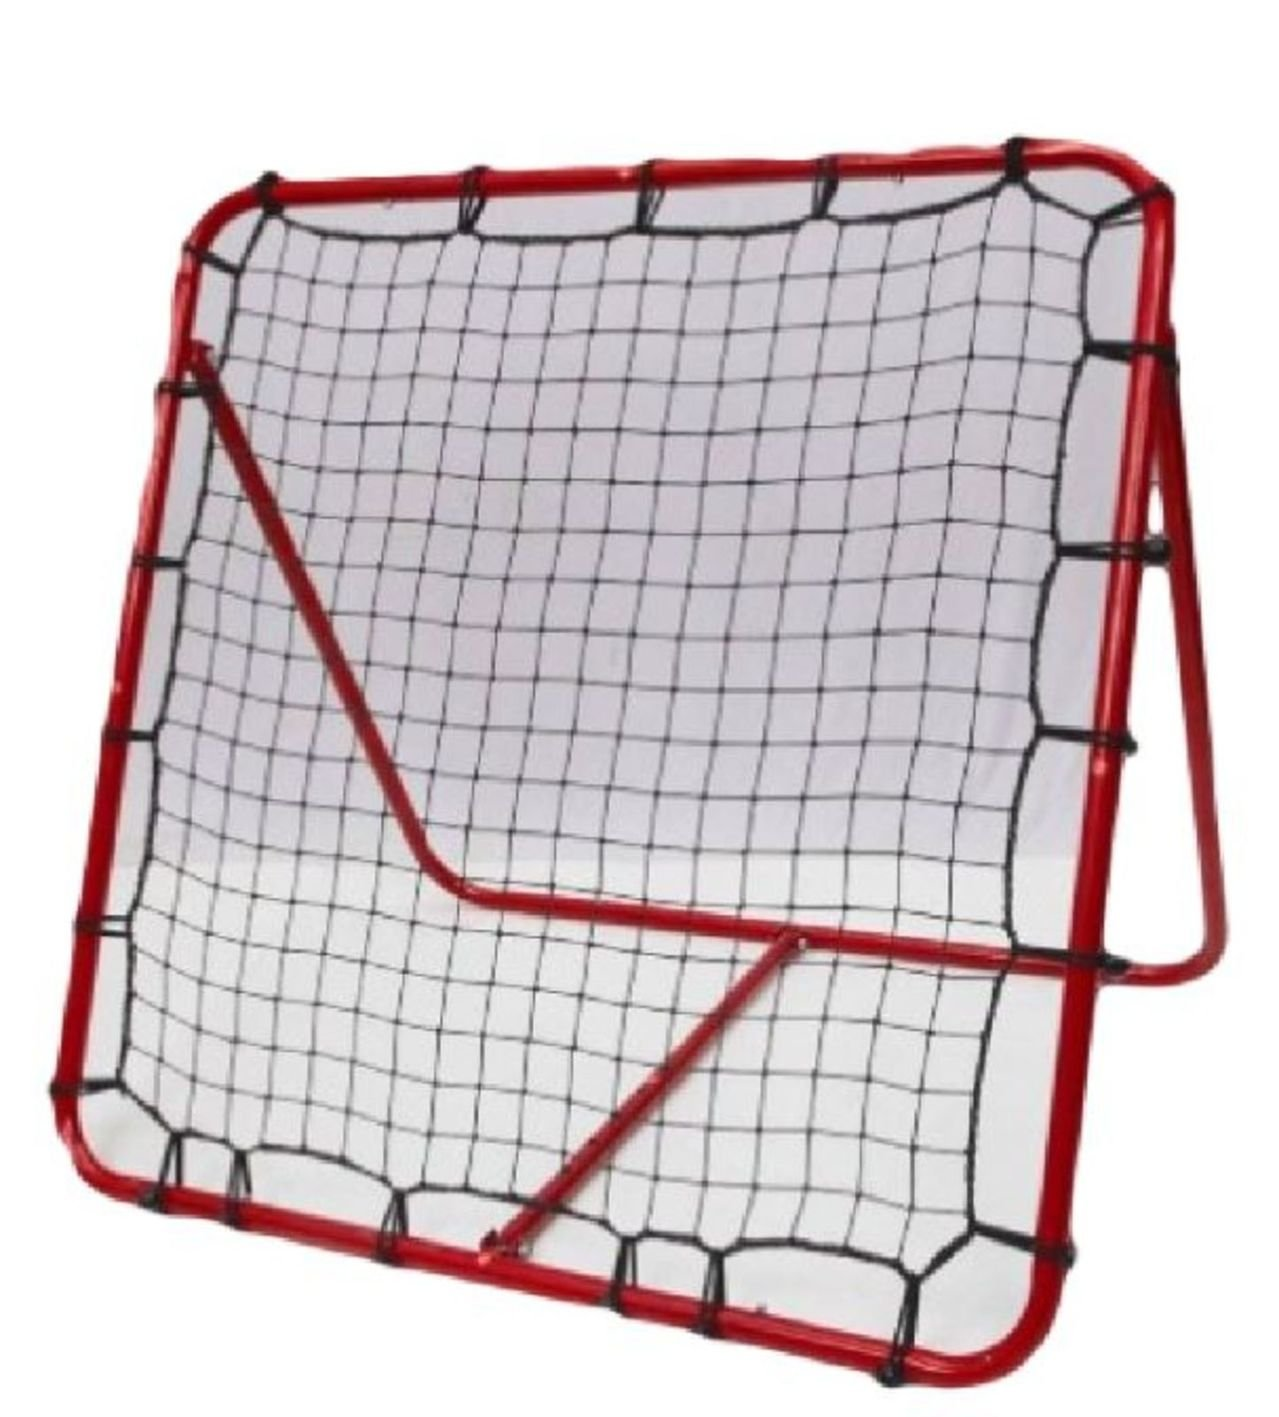 Team Sports Filet de rebond pour enfant Catch Filet d'entraînement de Cricket (réponse ar - 601) Only Cricket